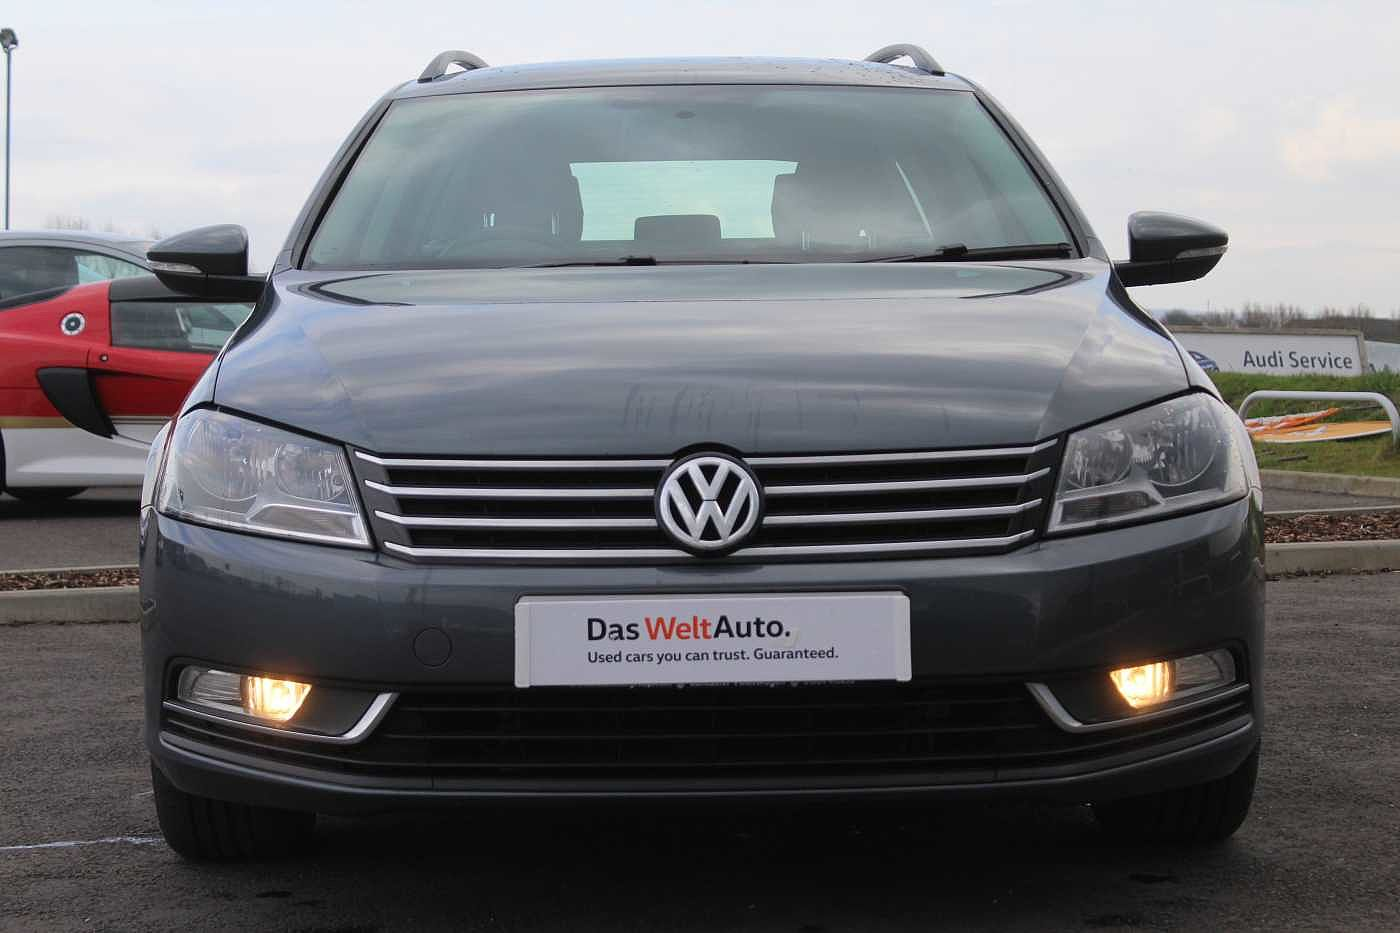 Volkswagen Passat Estate 1.6 TDI S 105PS